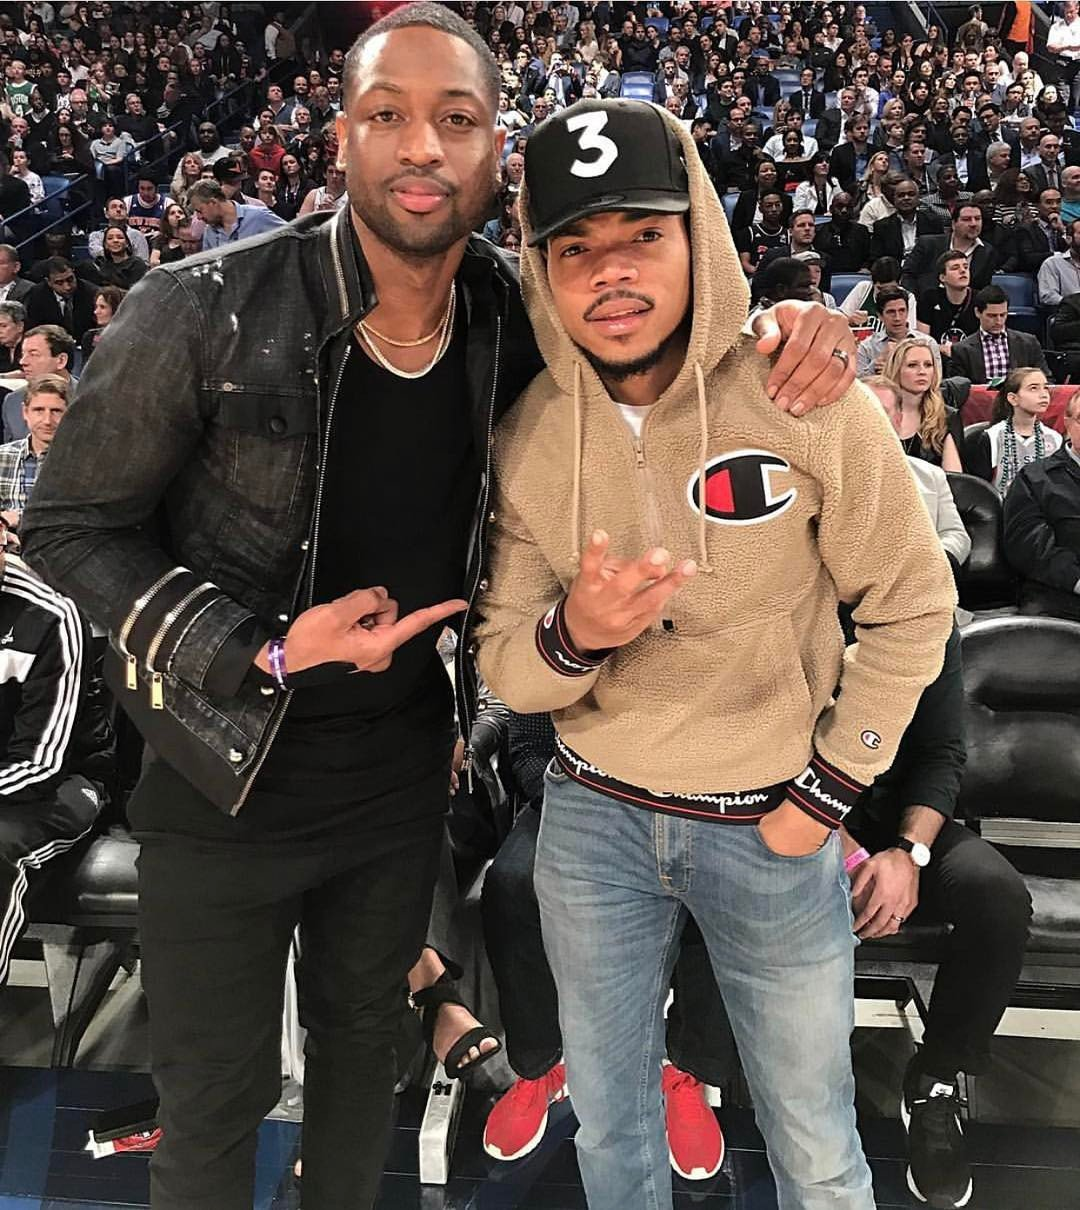 Dwyane Wade, pictured with Chance the Rapper, wearing Daniel Patrick low crotch skinny denim at the NBA All Star Game